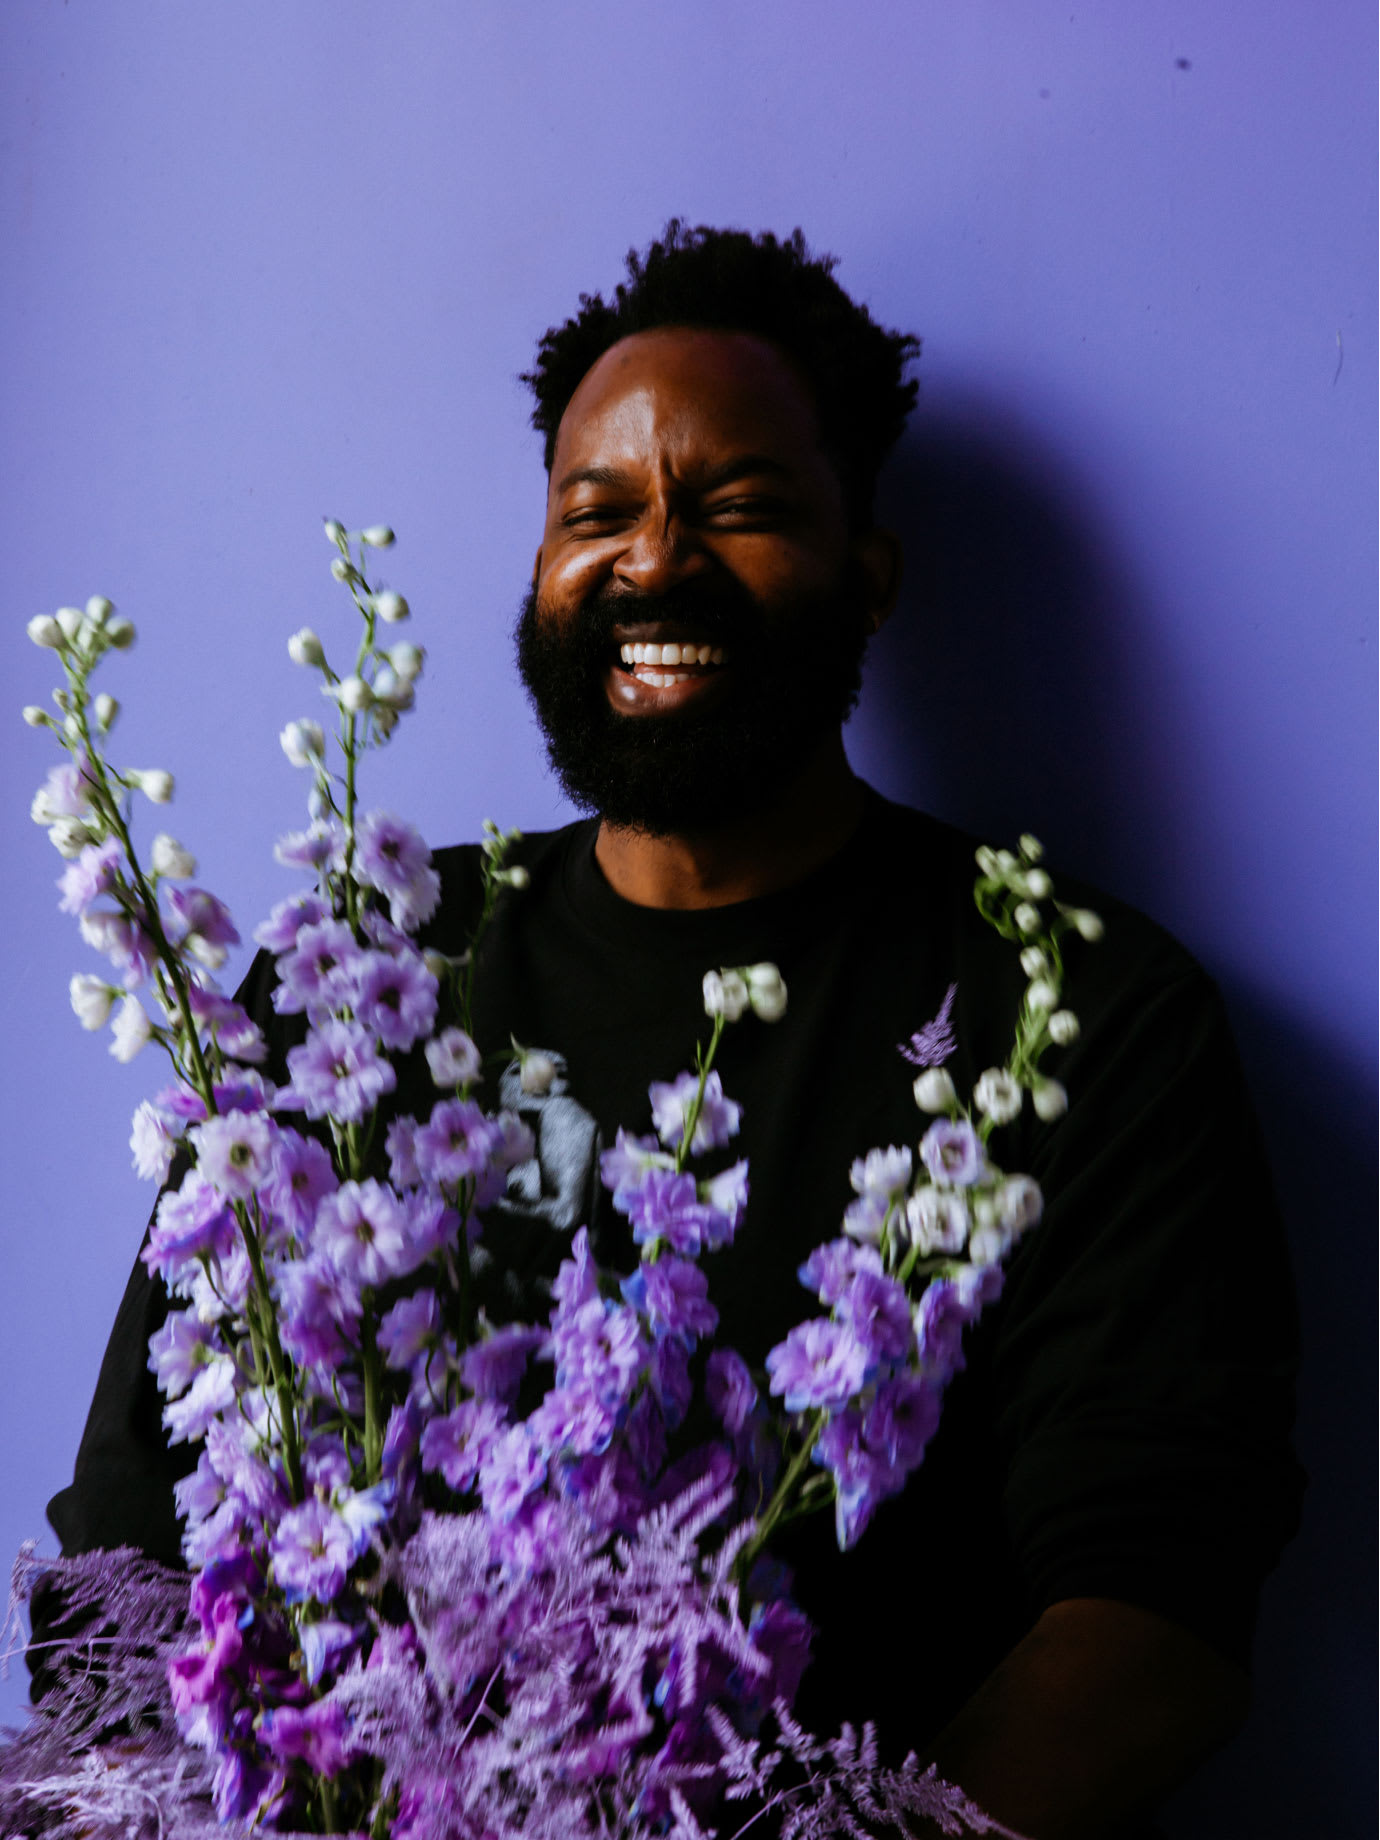 A laughing man holding purple flowers in front of a purple background.